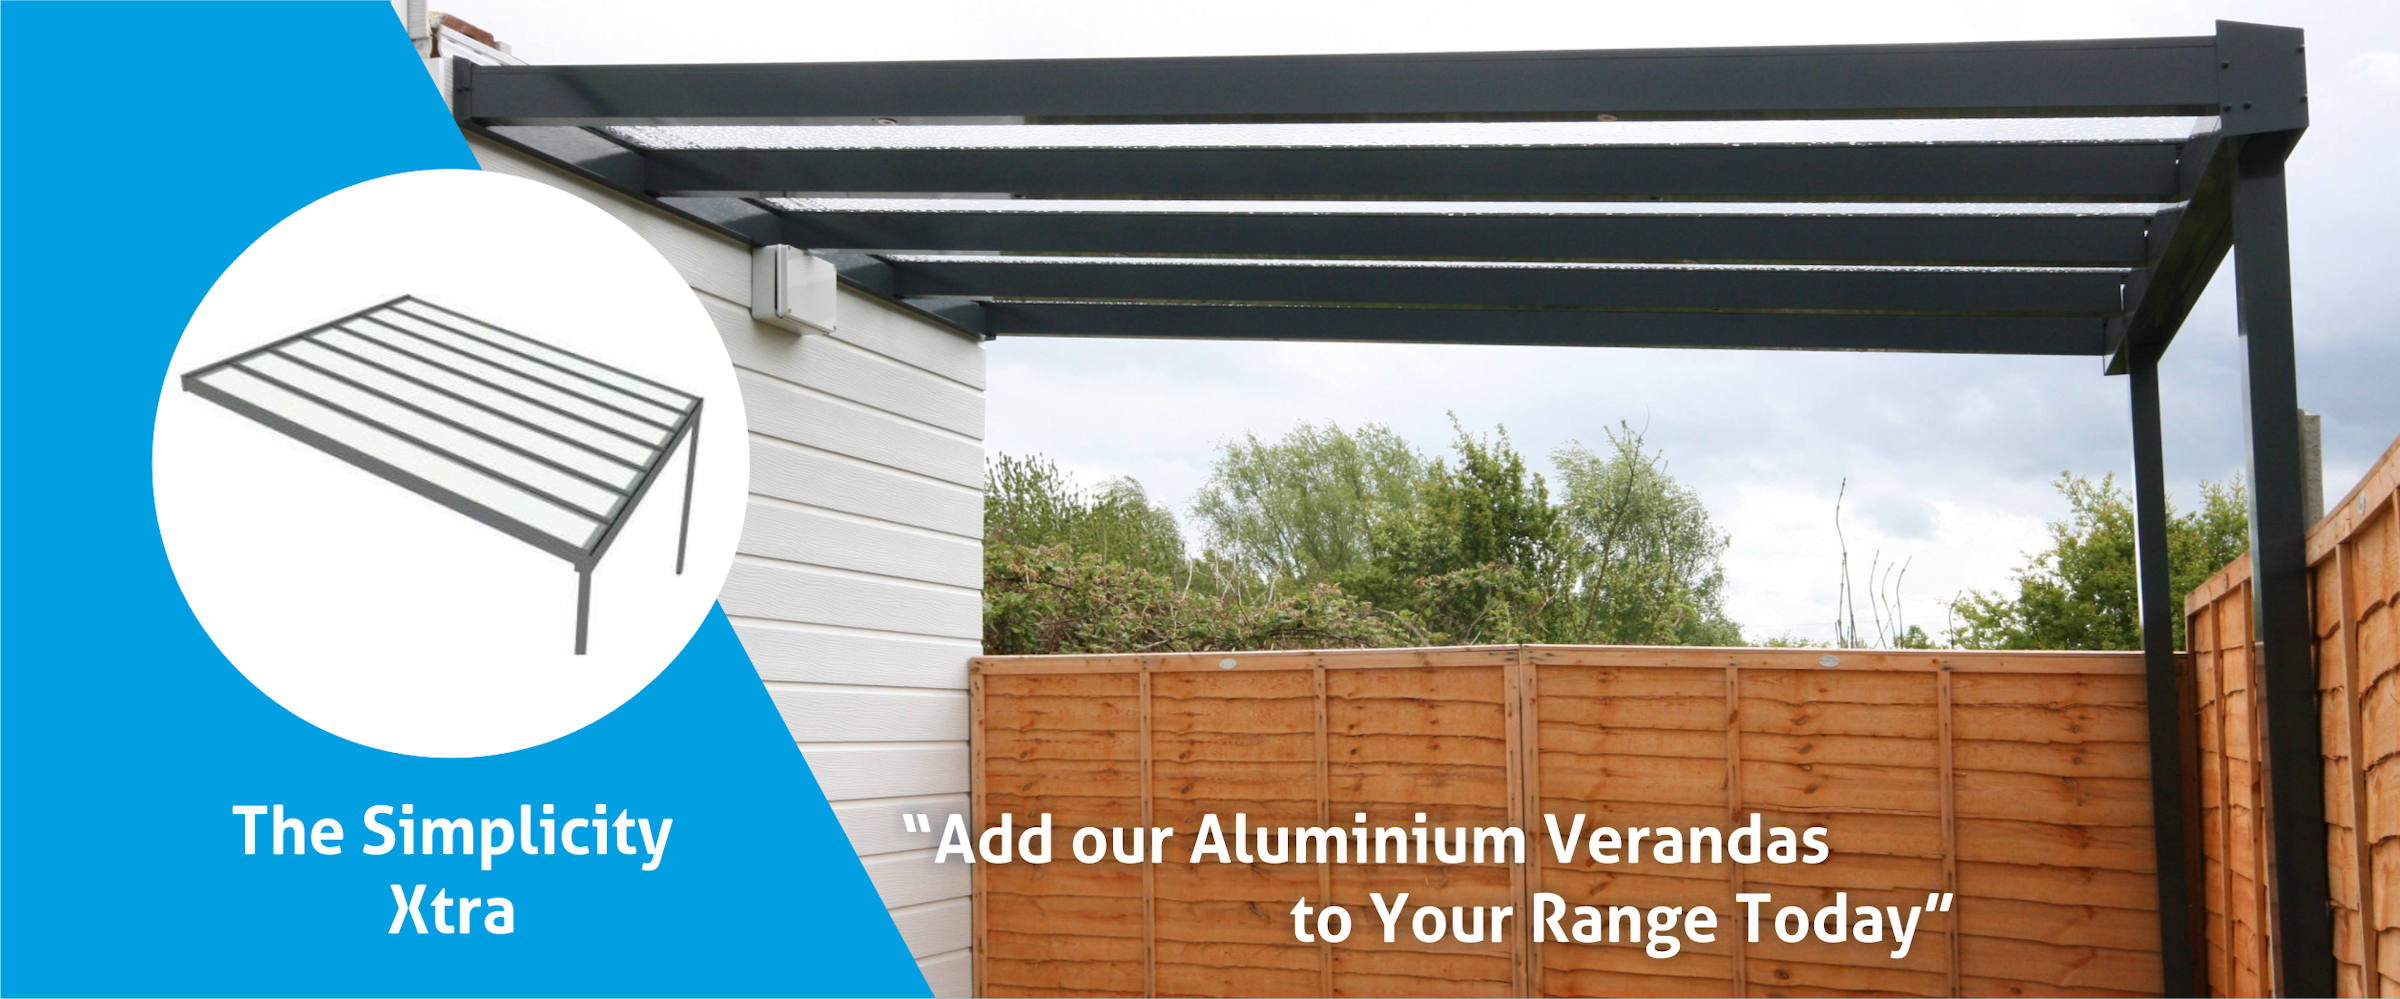 Aluminium and Glass Veranda: The Simplicity Xtra